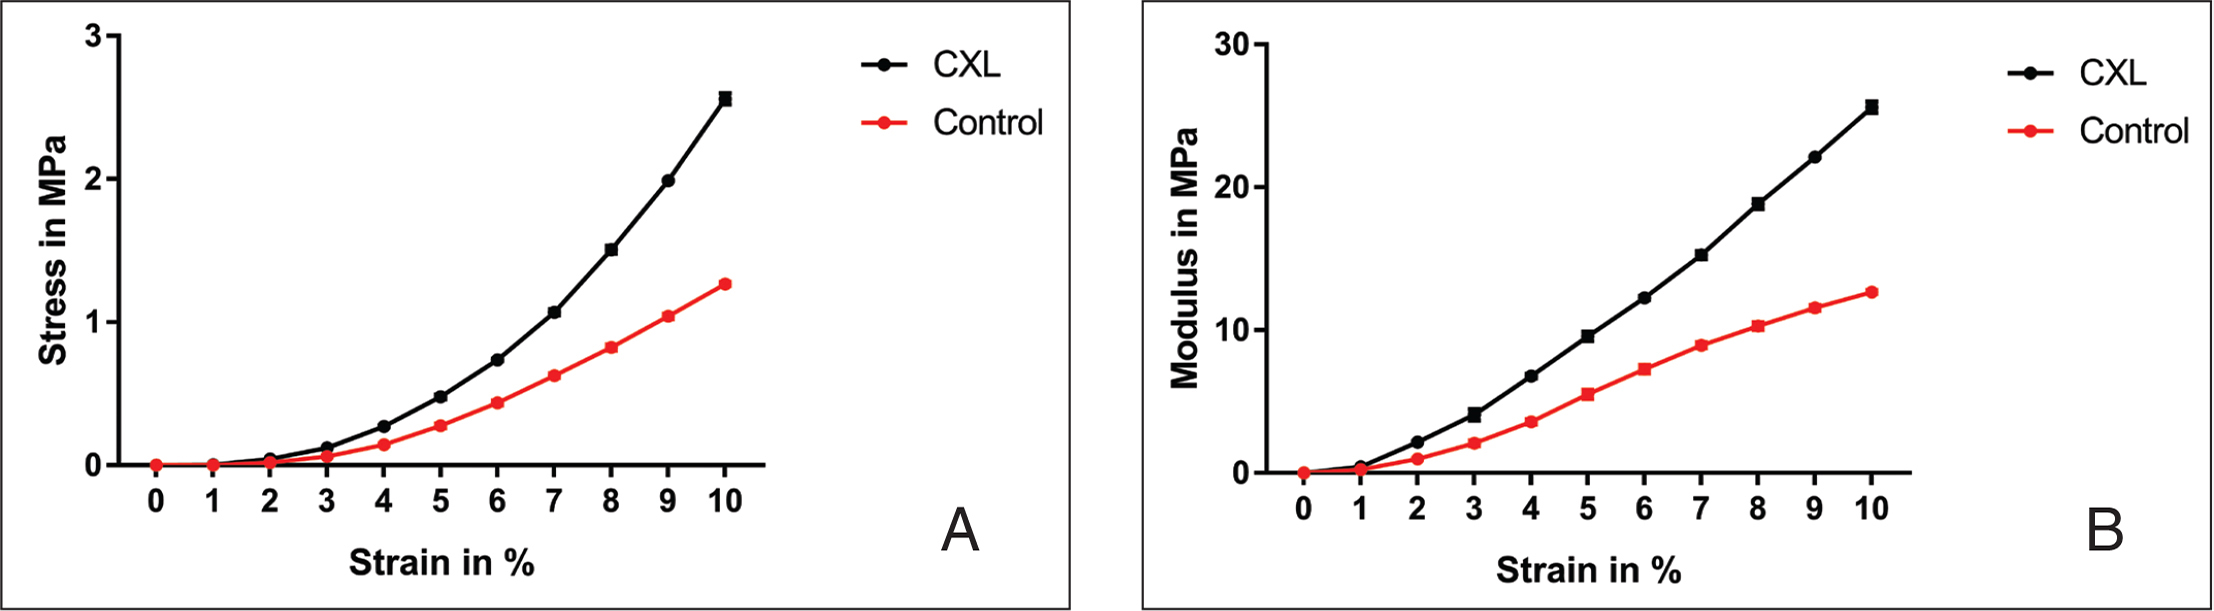 (A) Stress-strain behavior curves of corneal cross-linking (CXL) and control scleral specimens at 12 months postoperatively to compare the biomechanical effect of scleral CXL. (B) Young's modulus curves of CXL and control scleral specimens at 12 months postoperatively to compare the biomechanical effect of scleral CXL. (The scleral Young modulus value at 8% strain in the CXL eyes corresponded to 183% of the control eyes.)